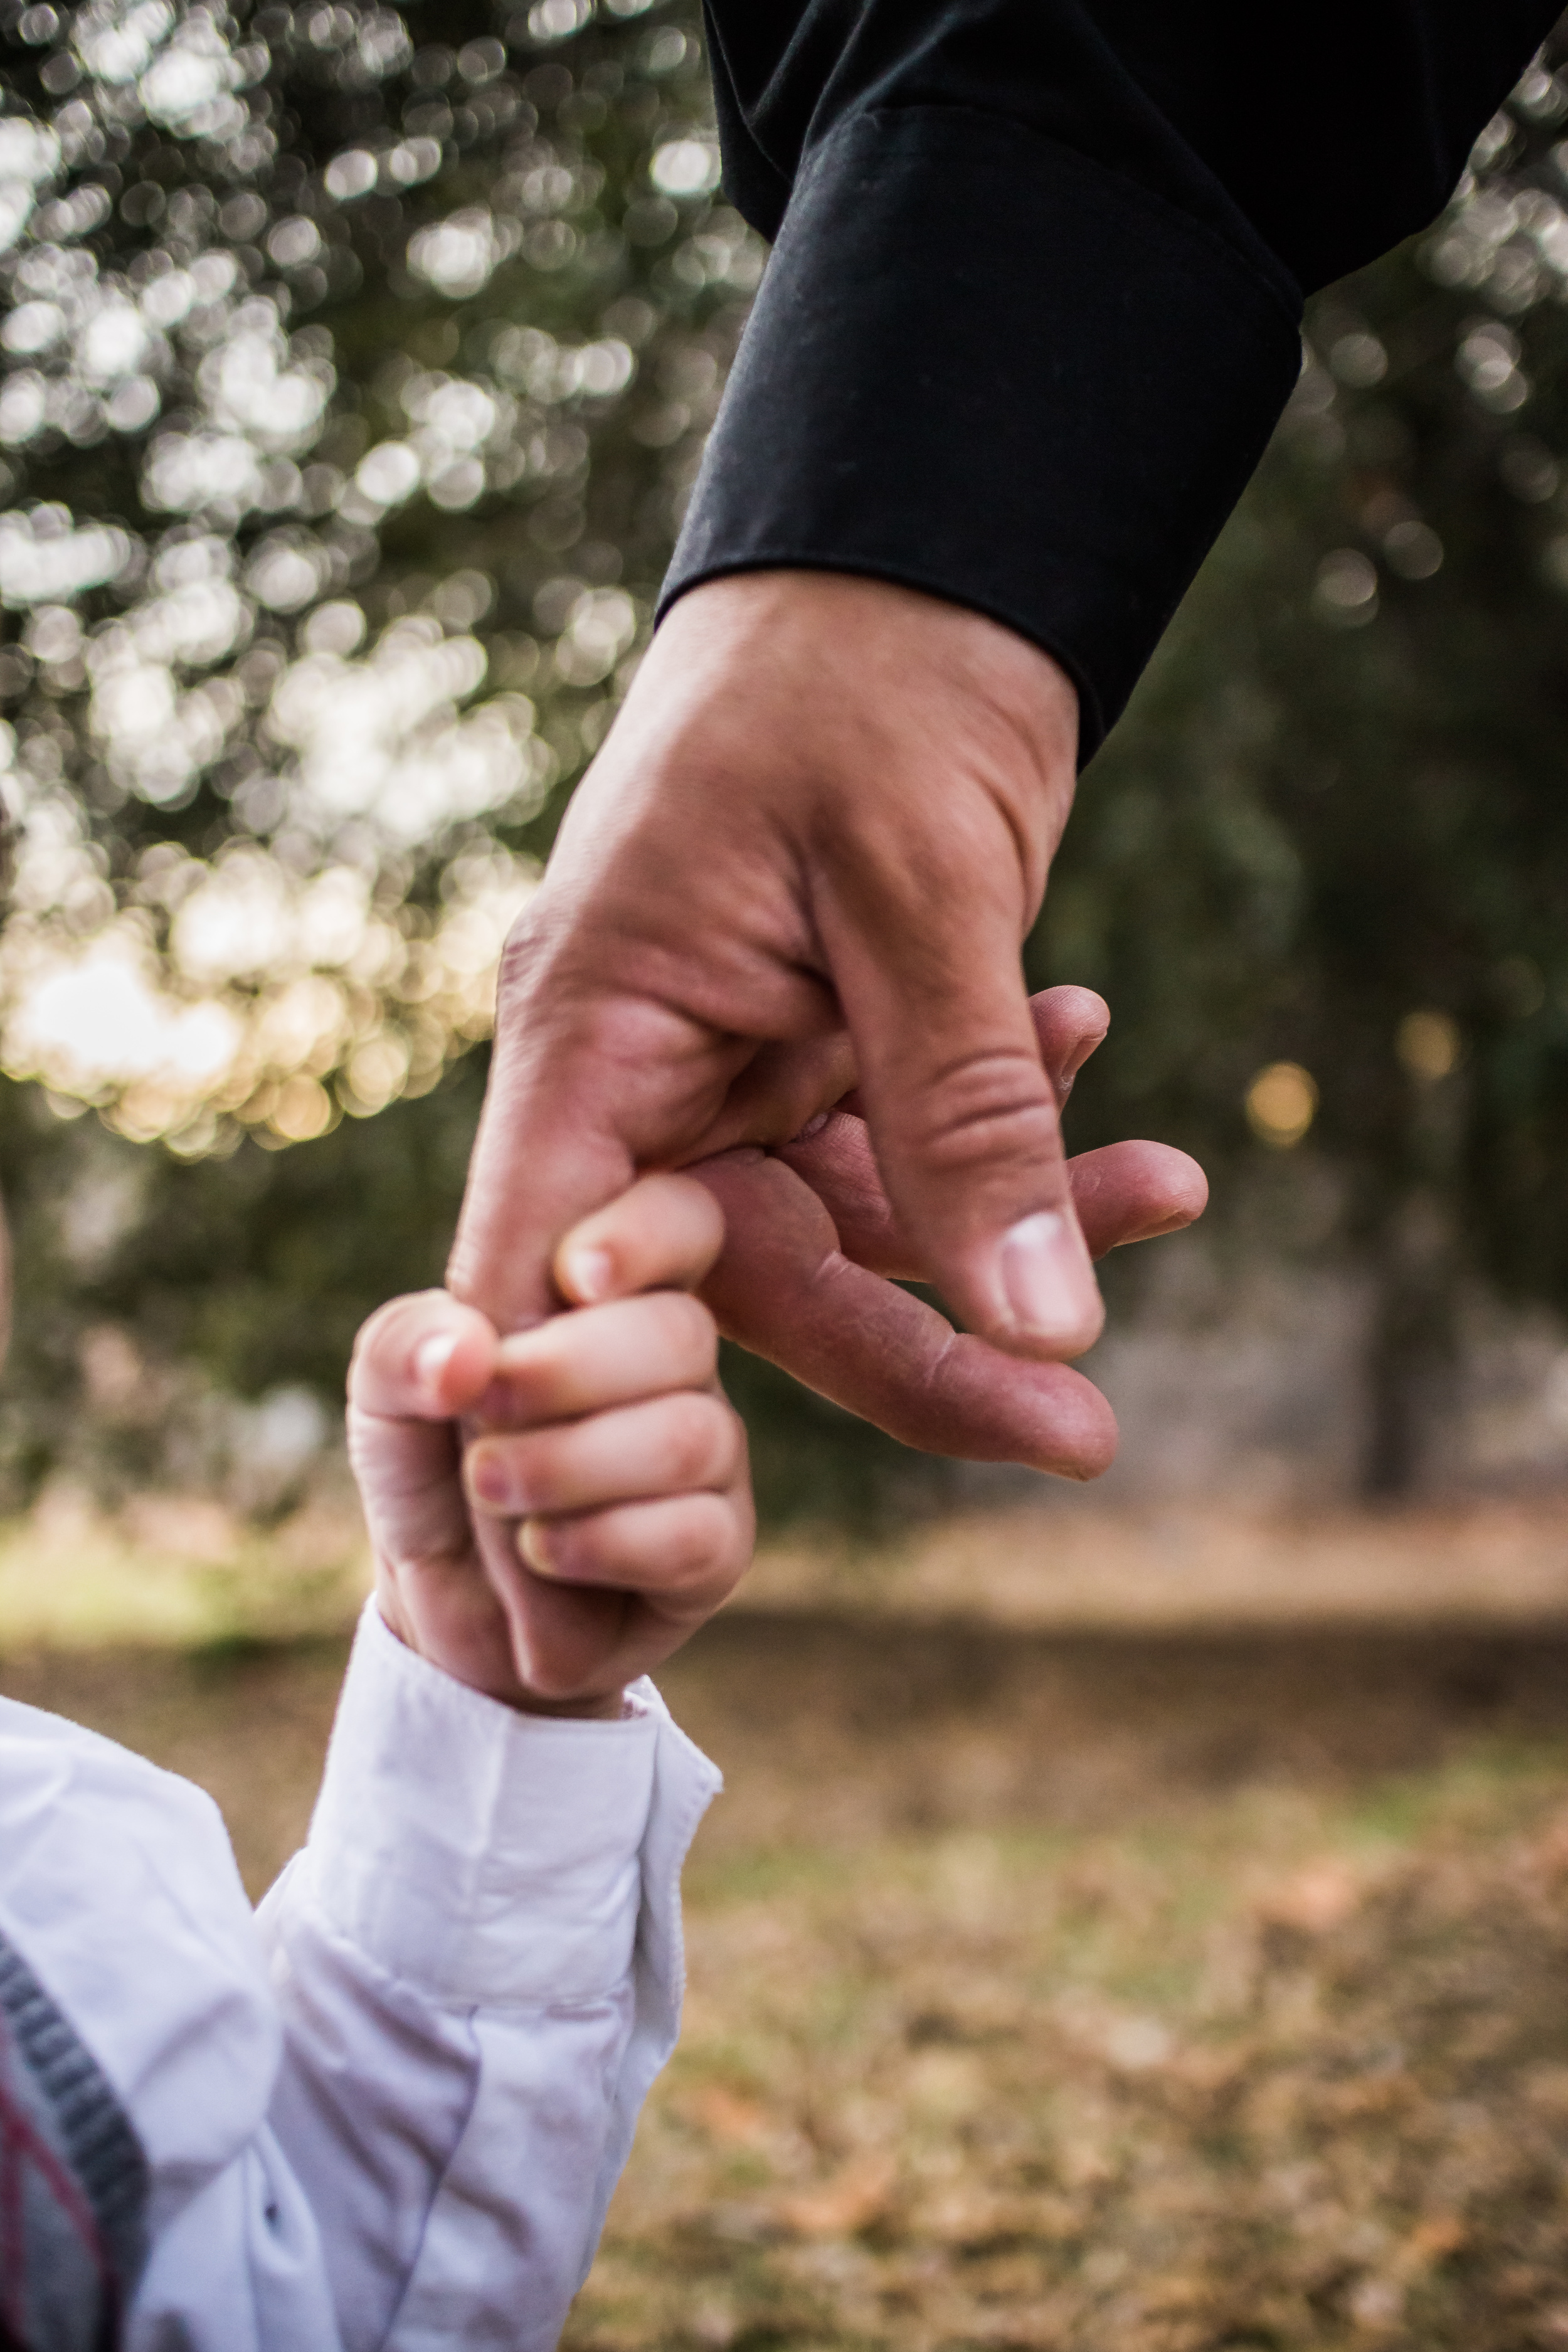 Tips For Your Family Pictures at The Park, Beach or Indoors